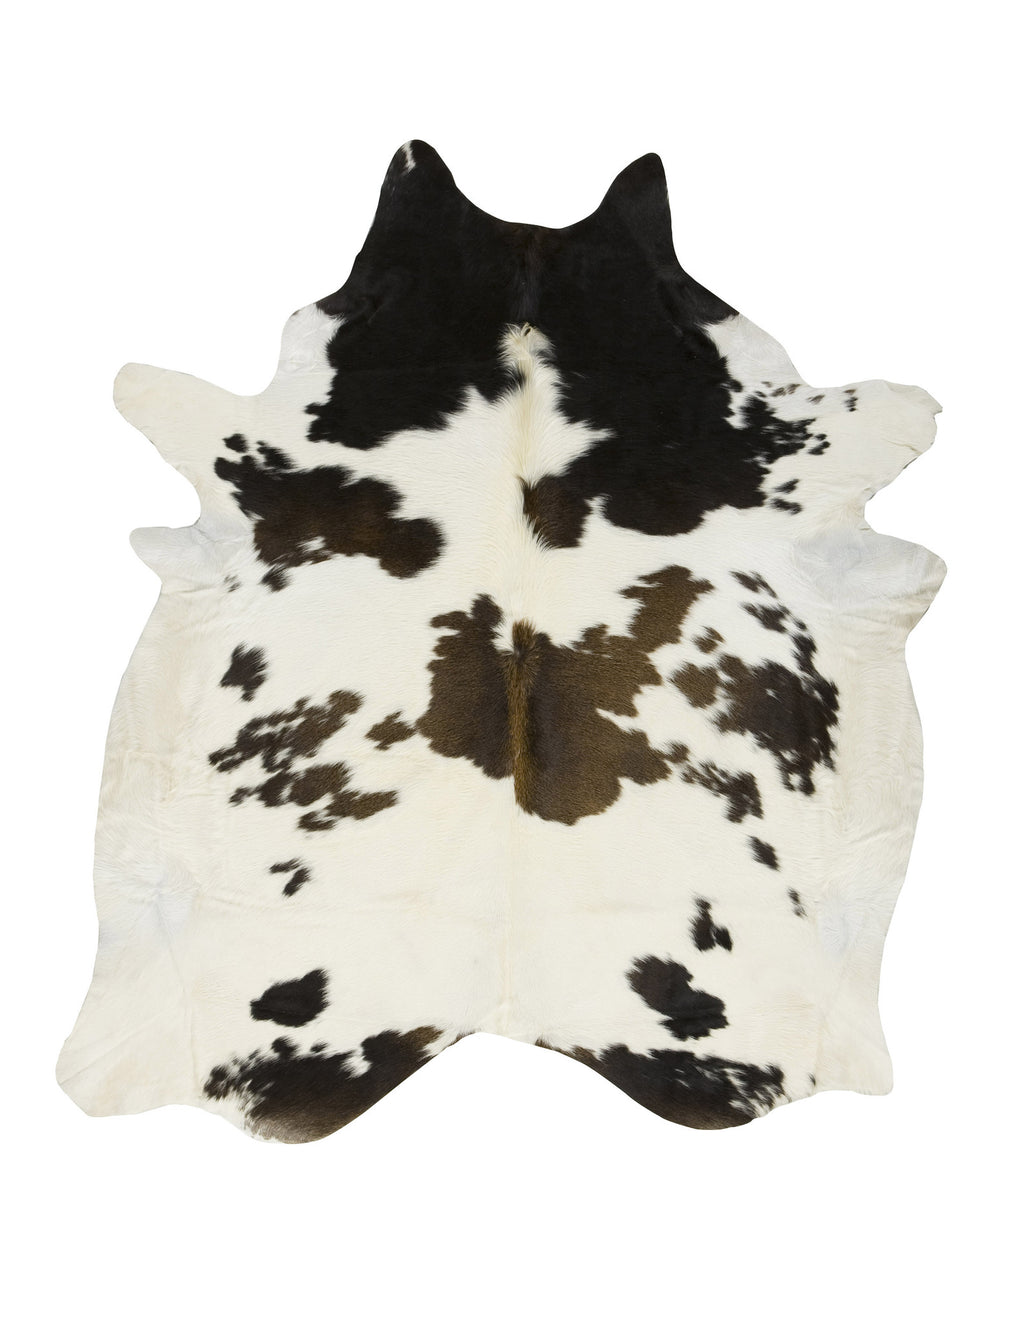 XLarge Black & White reddish Cowhide Rug